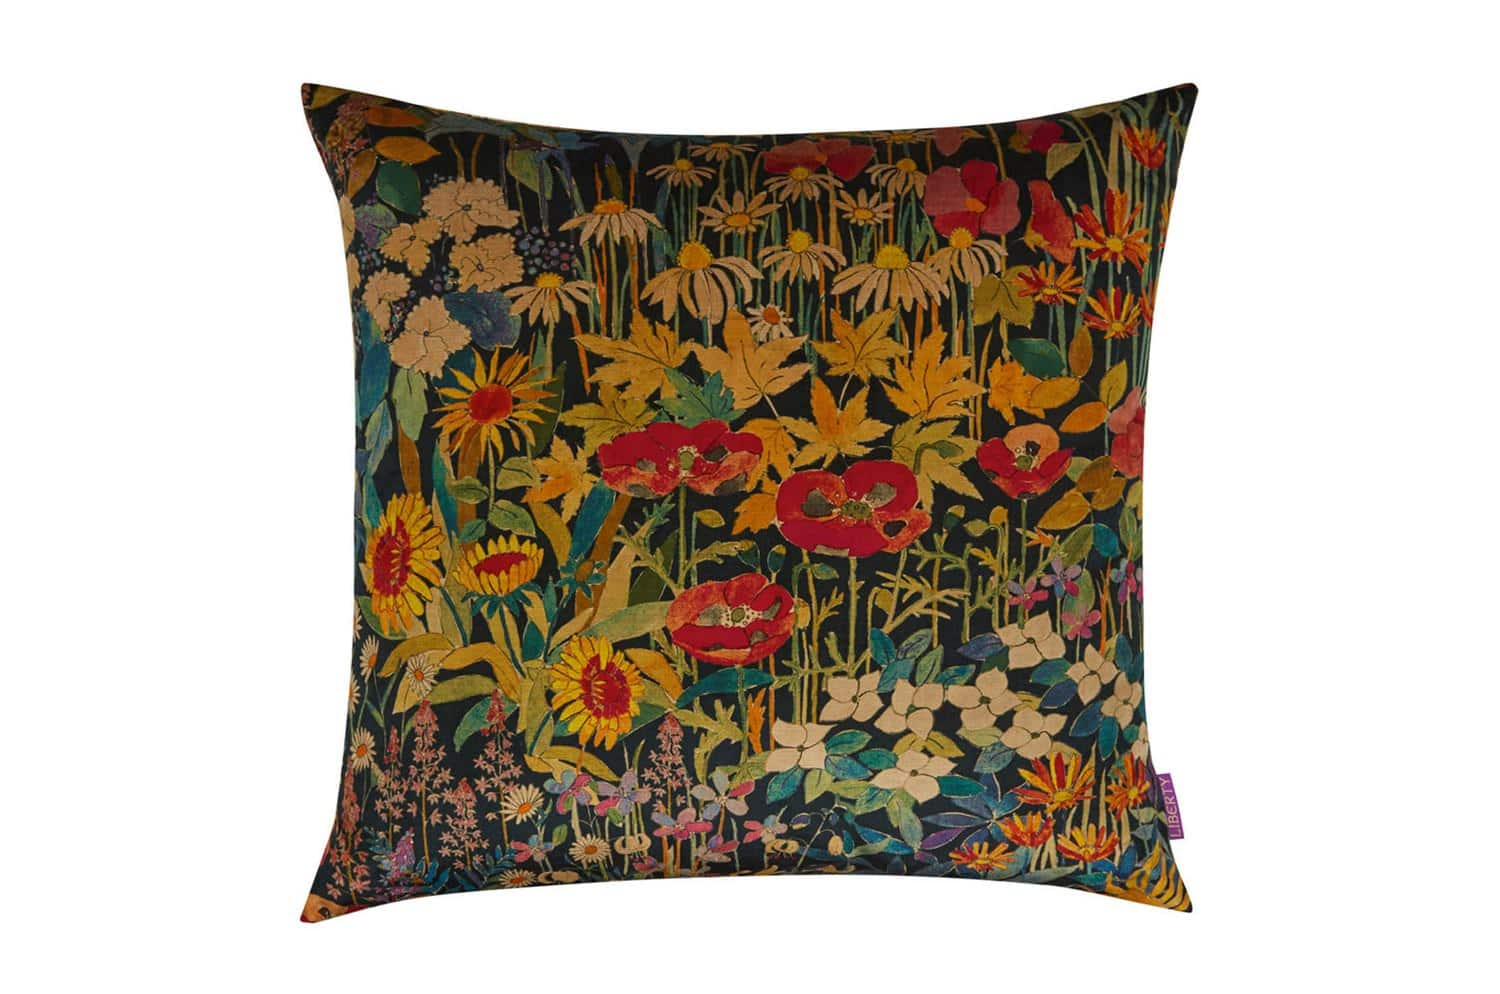 リバティ クッション LIBERTY ART FABRICS FARIA FLOWERS VINTAGE VELVET CUSHION IN MARIGOLD 60×60(中材付)